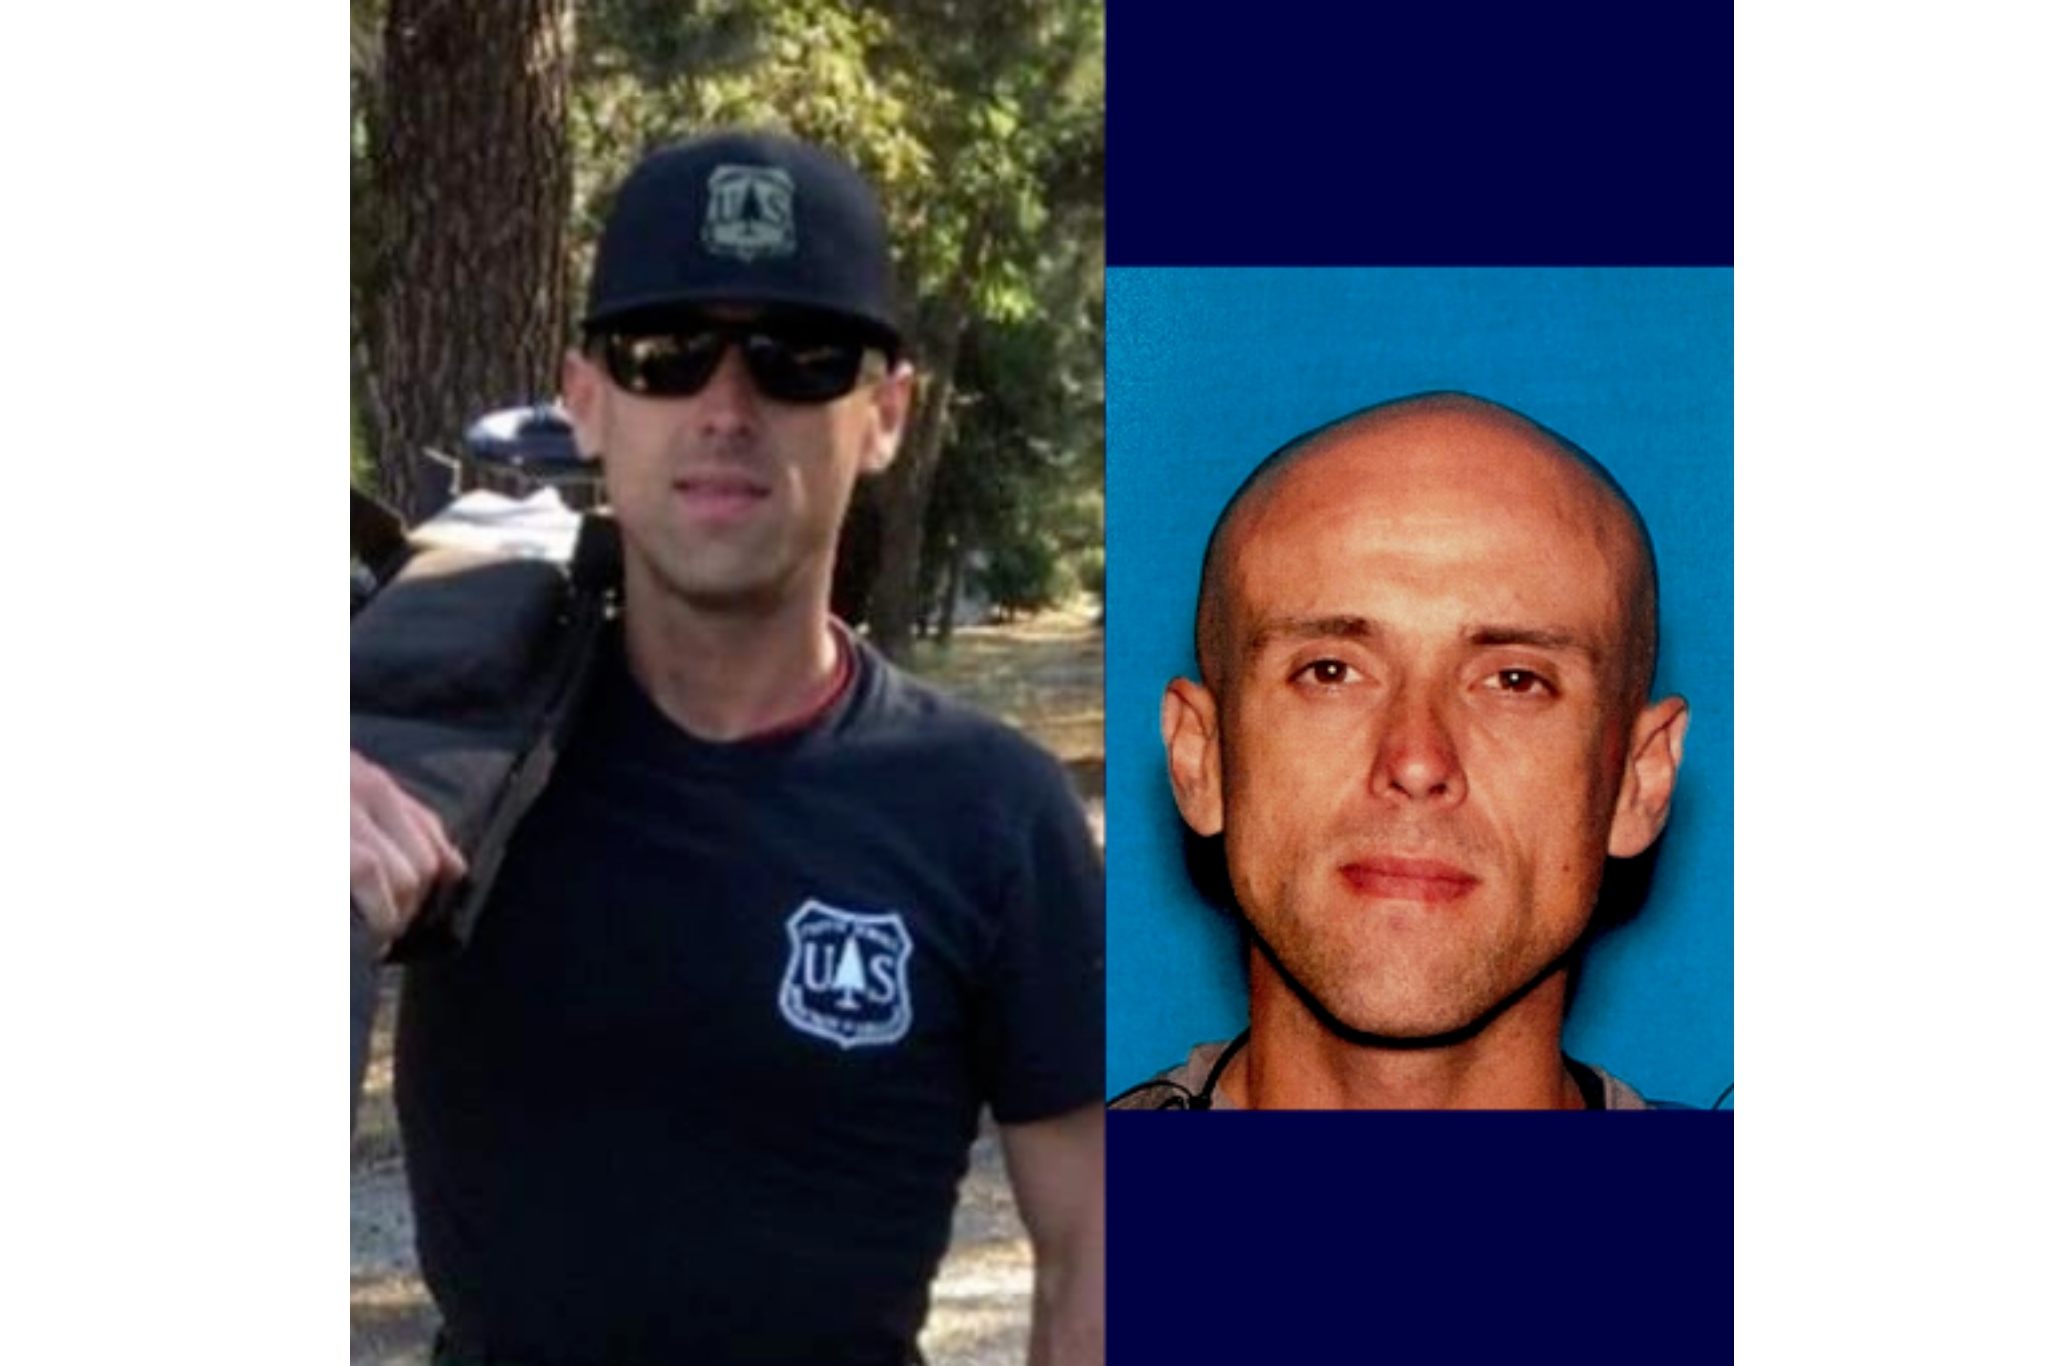 Missing off-duty firefighter sought in Southern California